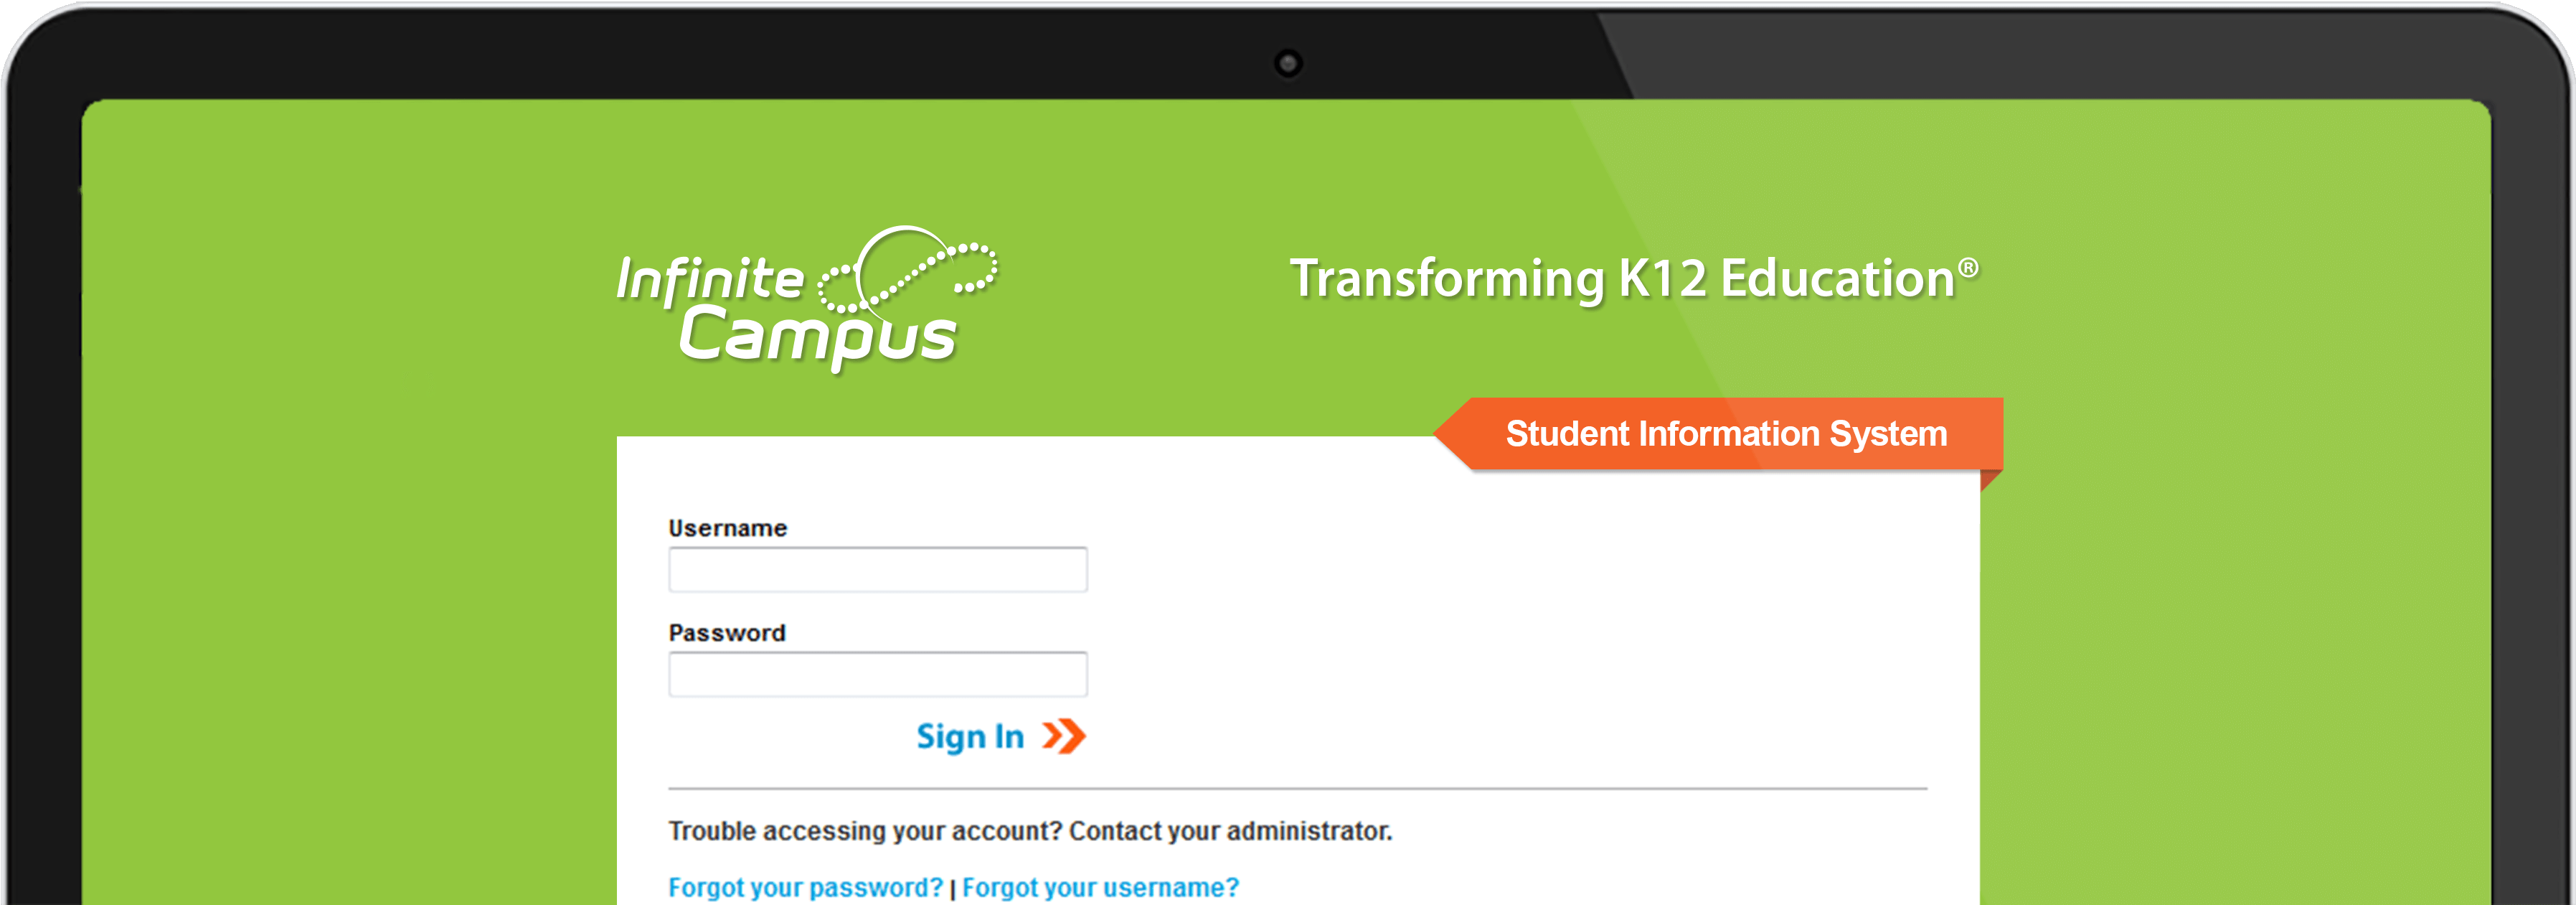 Student Information System · Infinite Campus